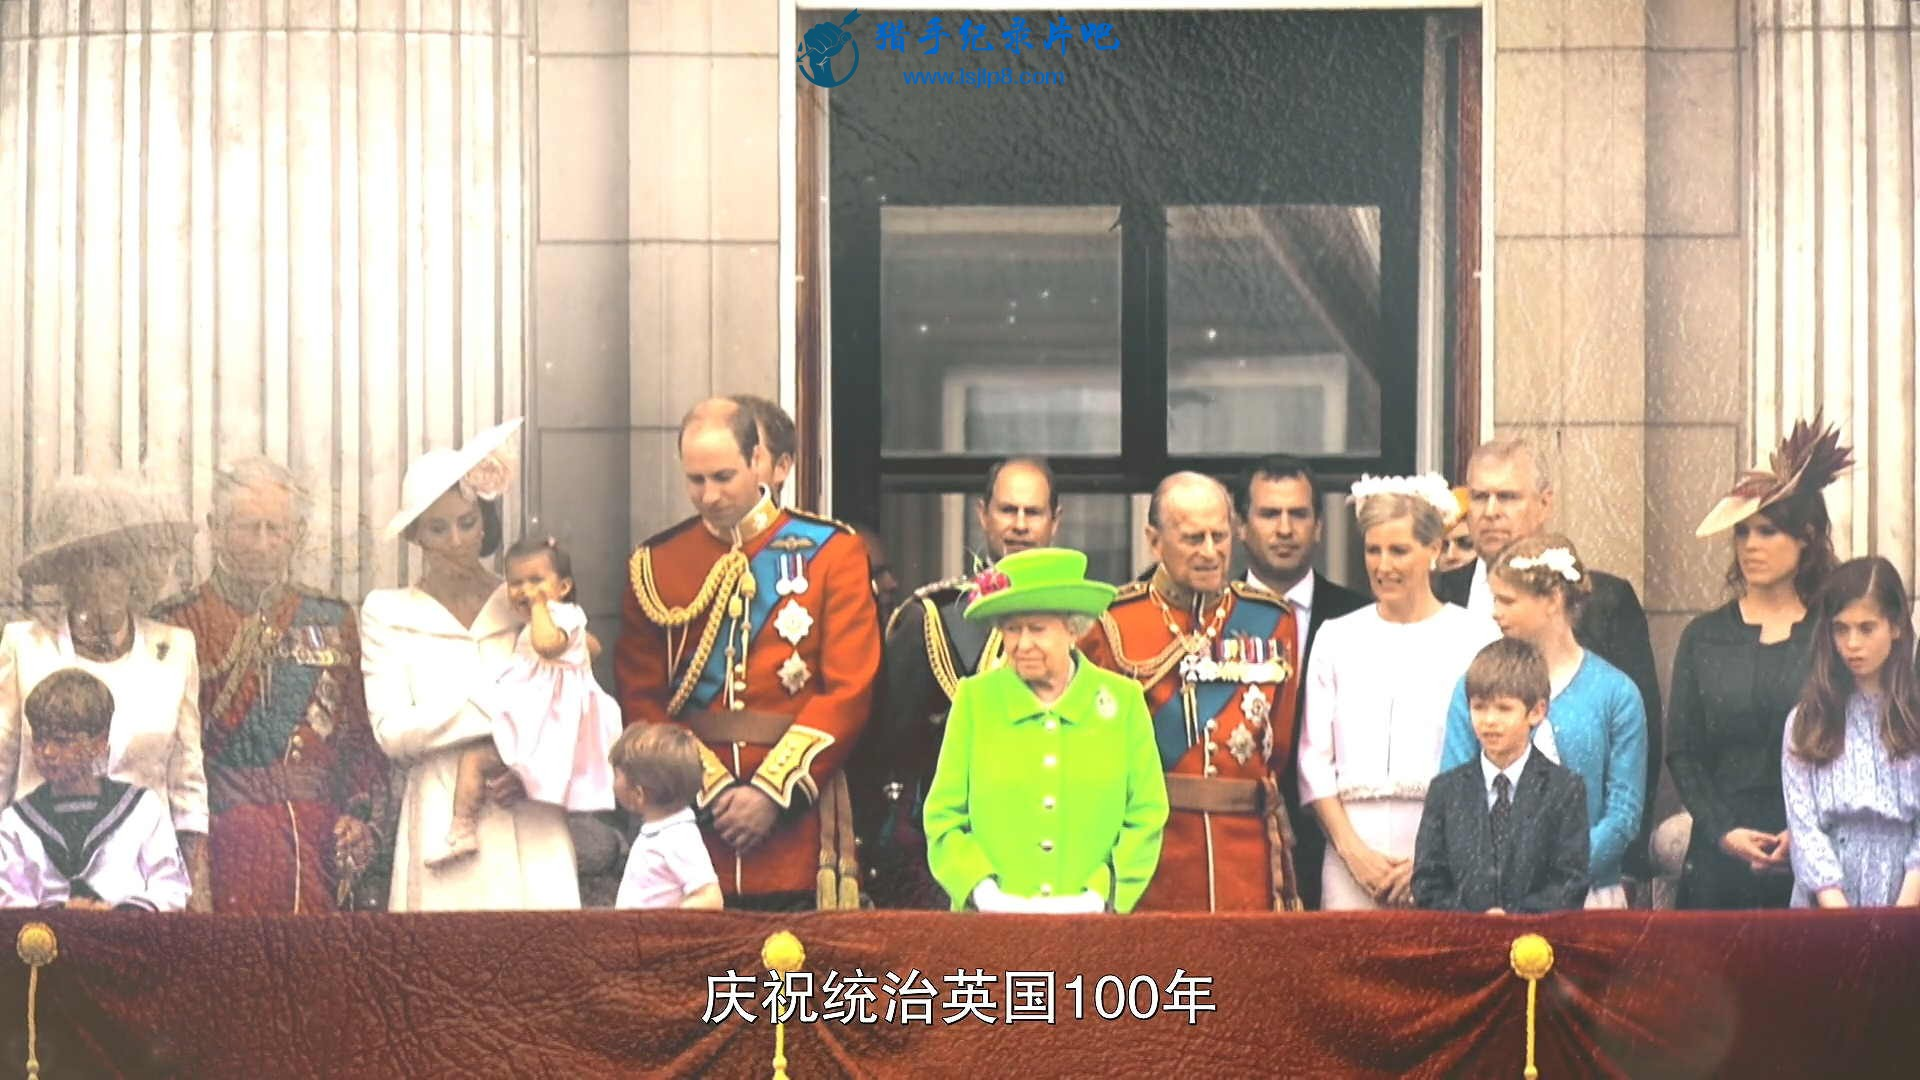 The.Royal.House.of.Windsor.S01E01.1080p.WEB.x264.CHS-LxyLab.mkv_20200917_114429..jpg